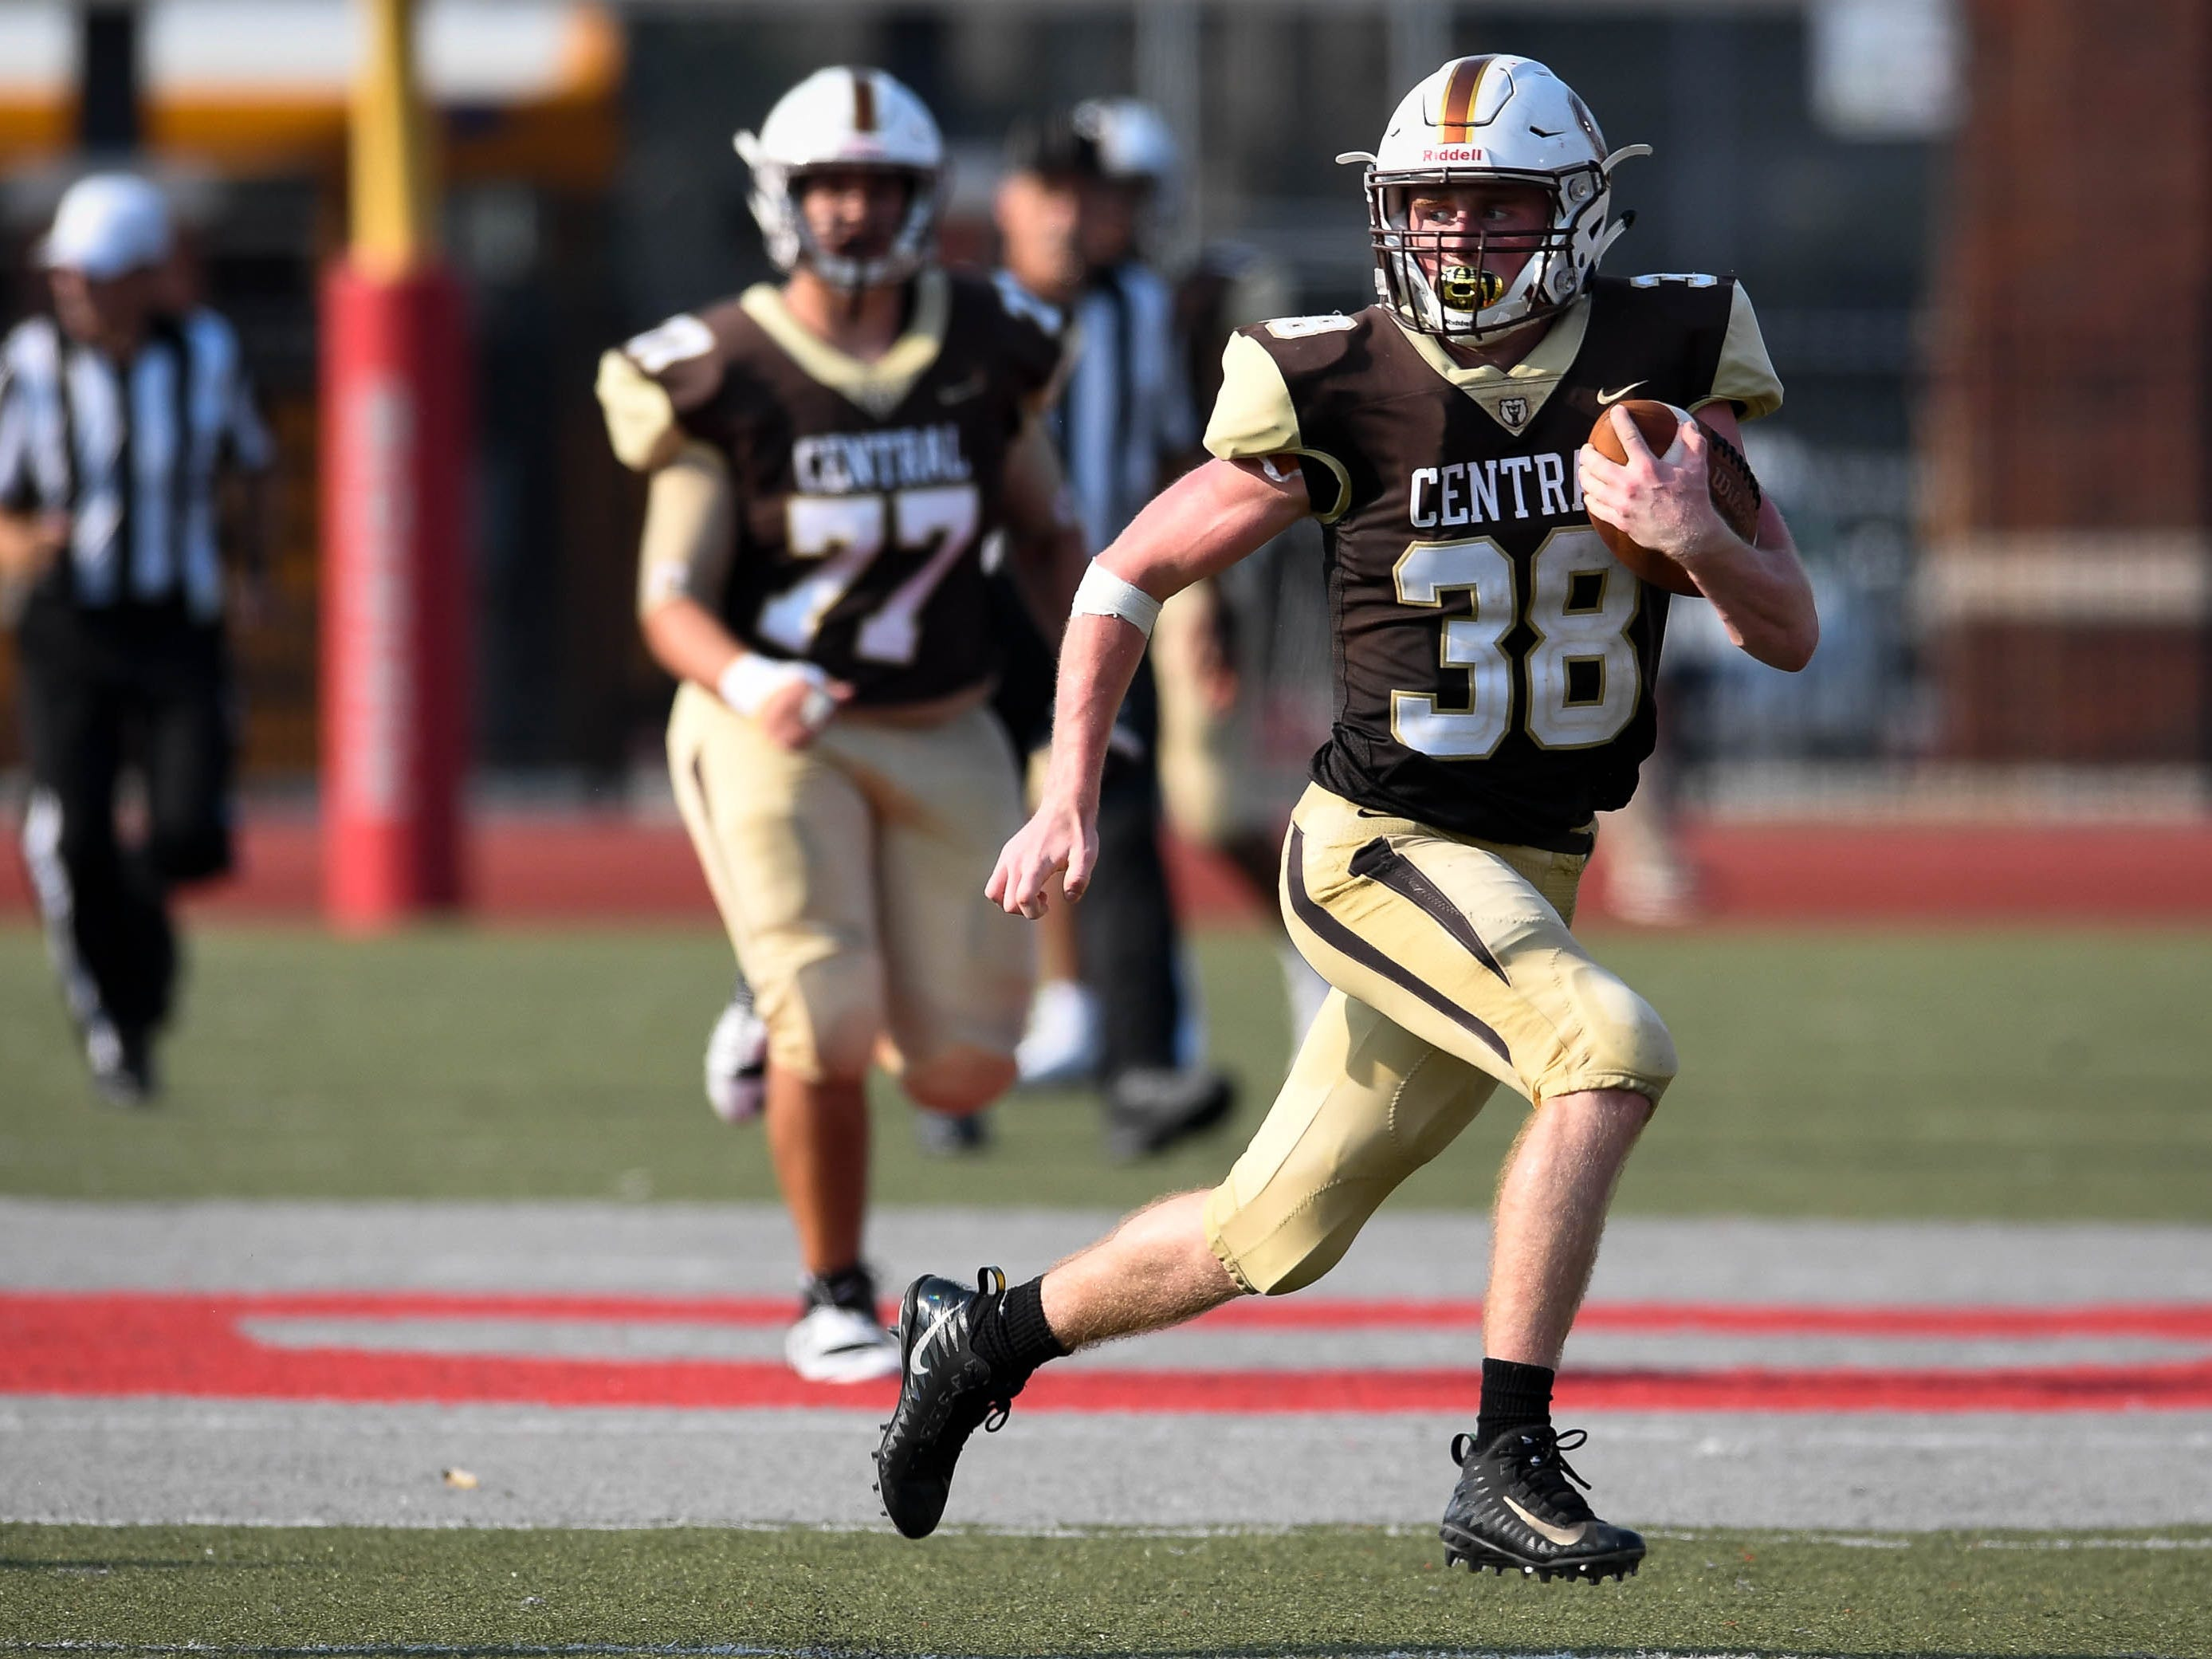 Central's Brennan Schutte (38) runs nearly the length of the field as the Daviess County Panthers play the Evansville Central Bears at the Border Bowl played at Enlow Field in Evansville Saturday, August 25, 2018.